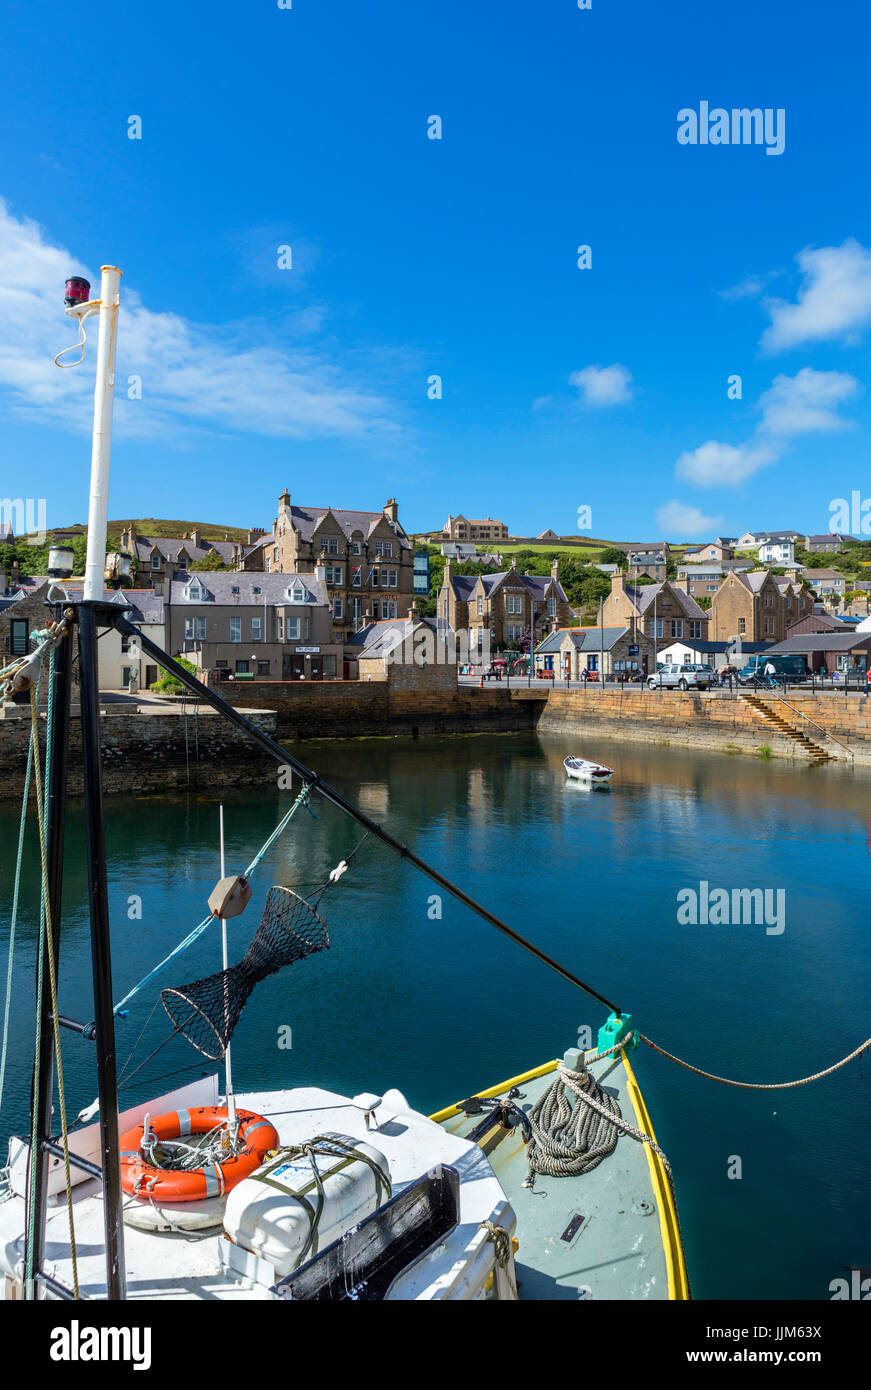 The harbour in Stromness, Mainland, Orkney, Orkney Islands, Scotland, UK - Stock Image